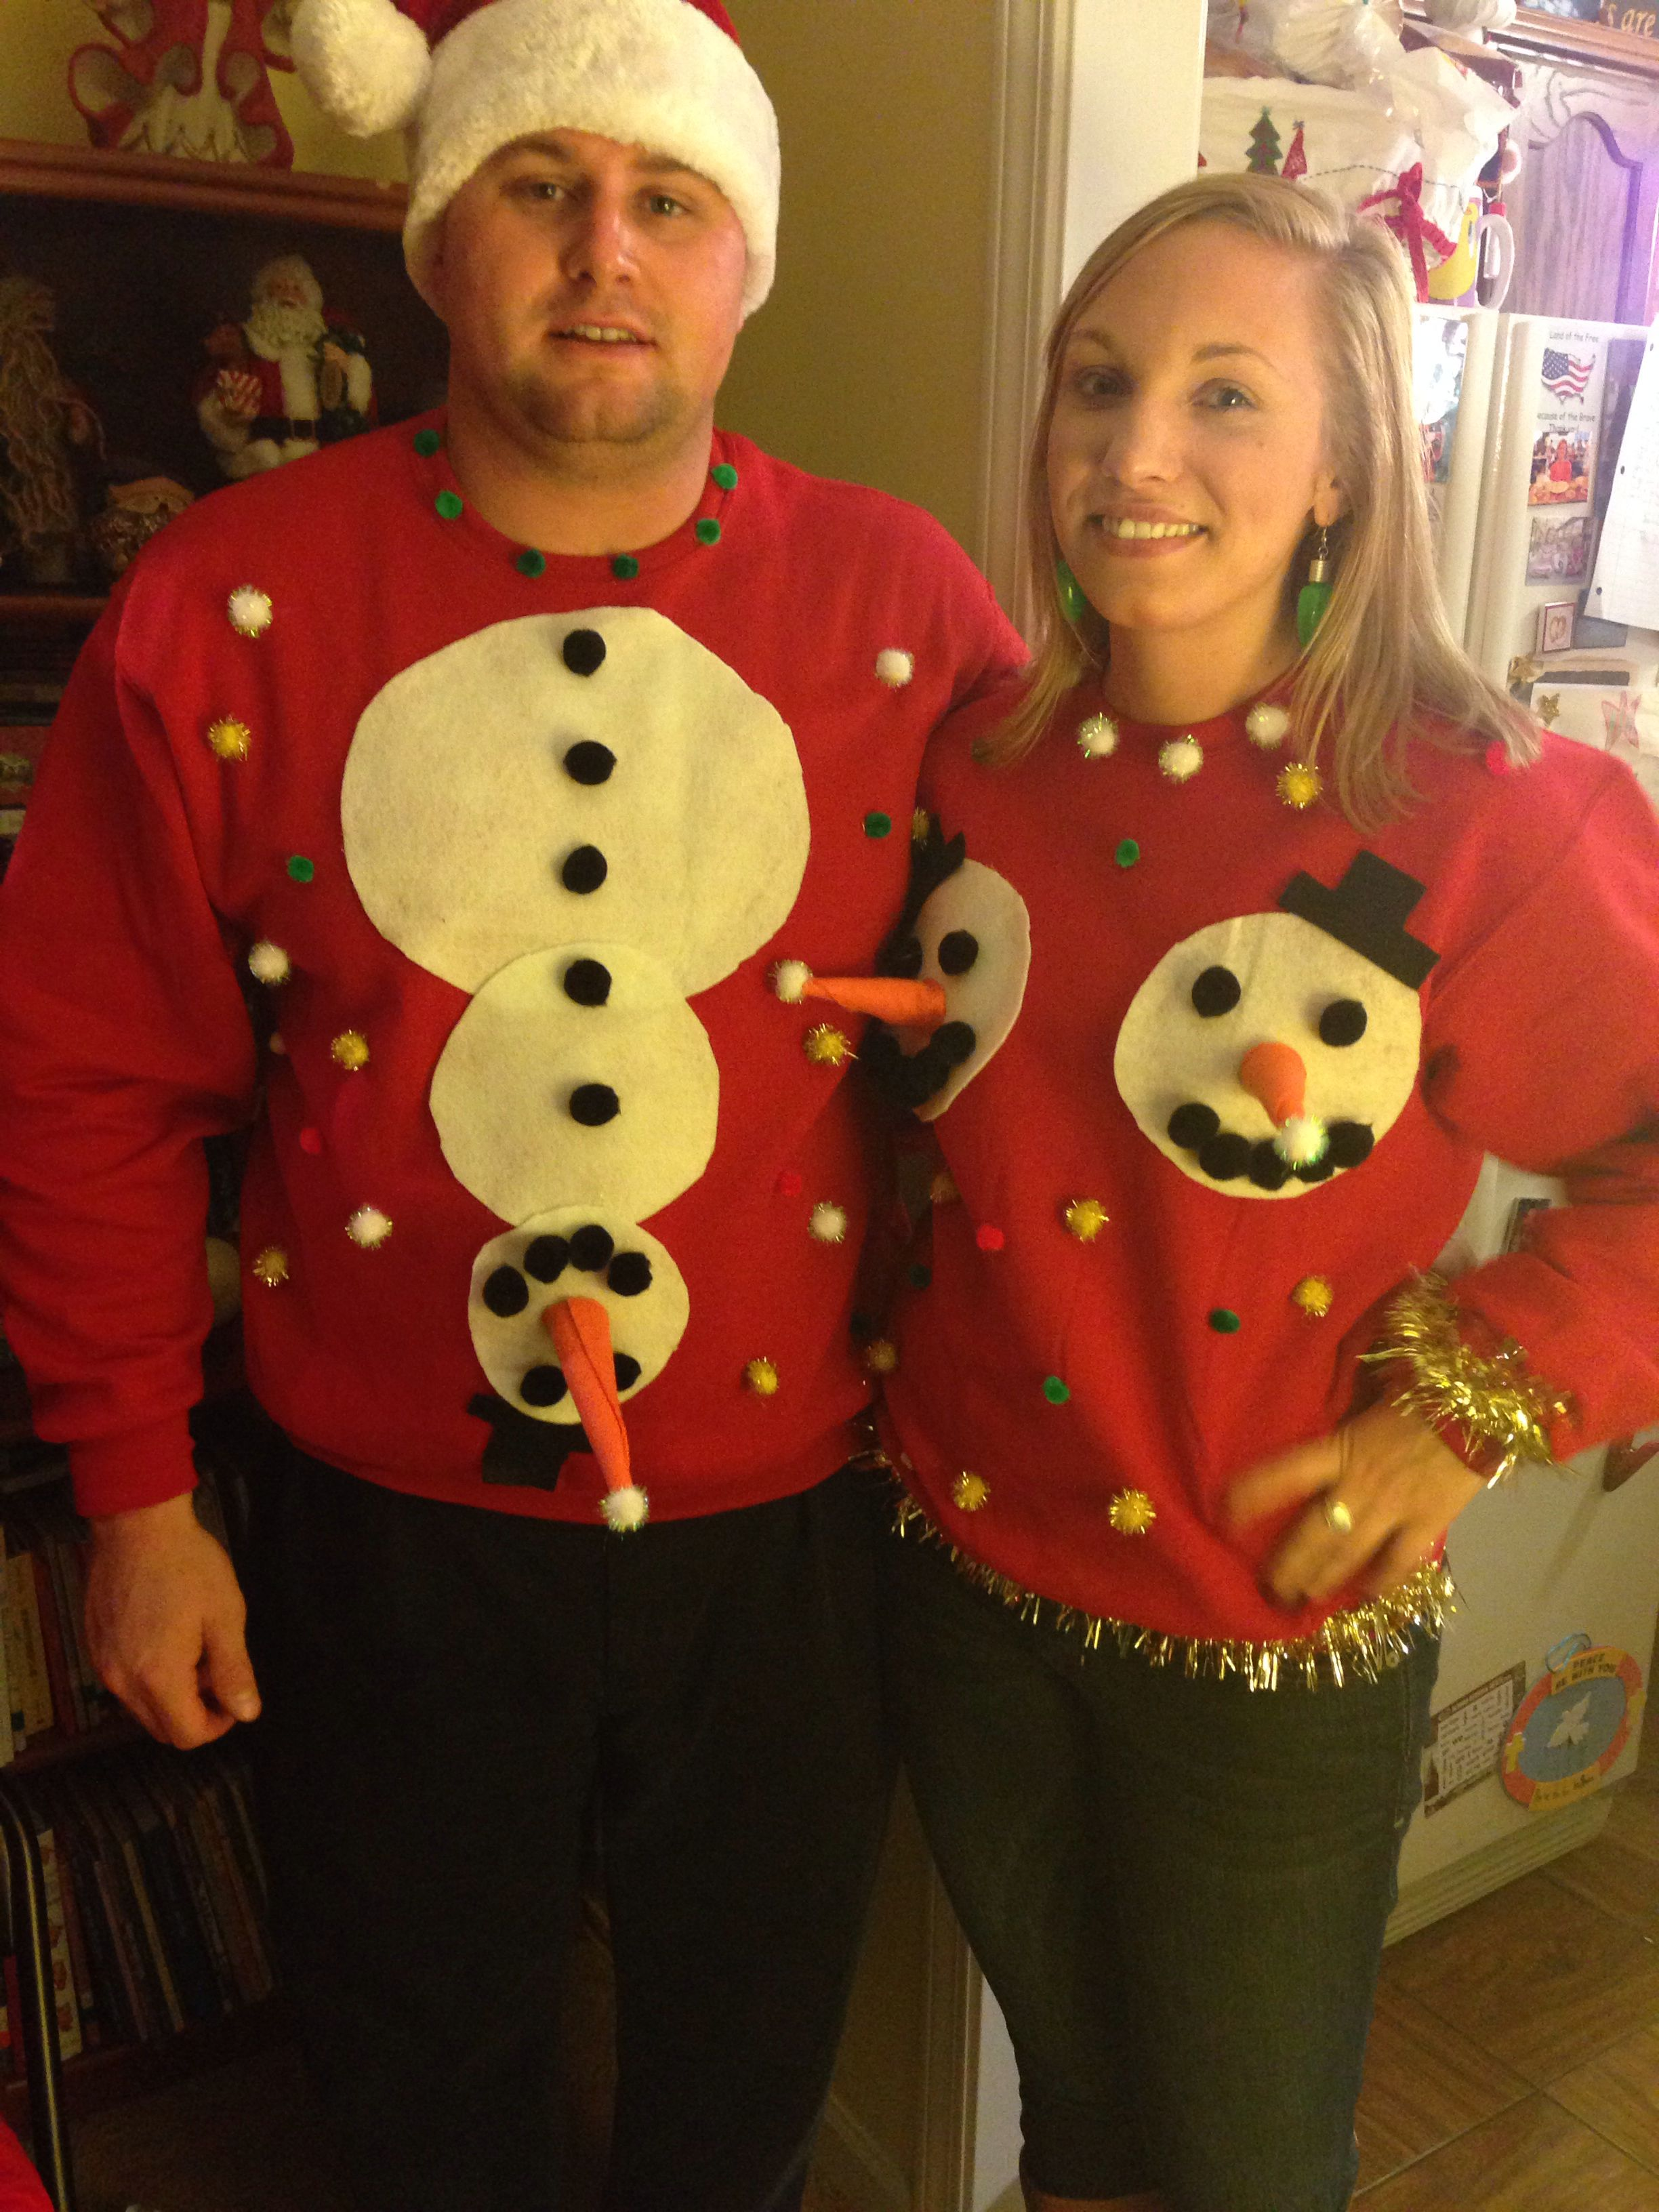 Homemade Great christmas sweater catalog photo